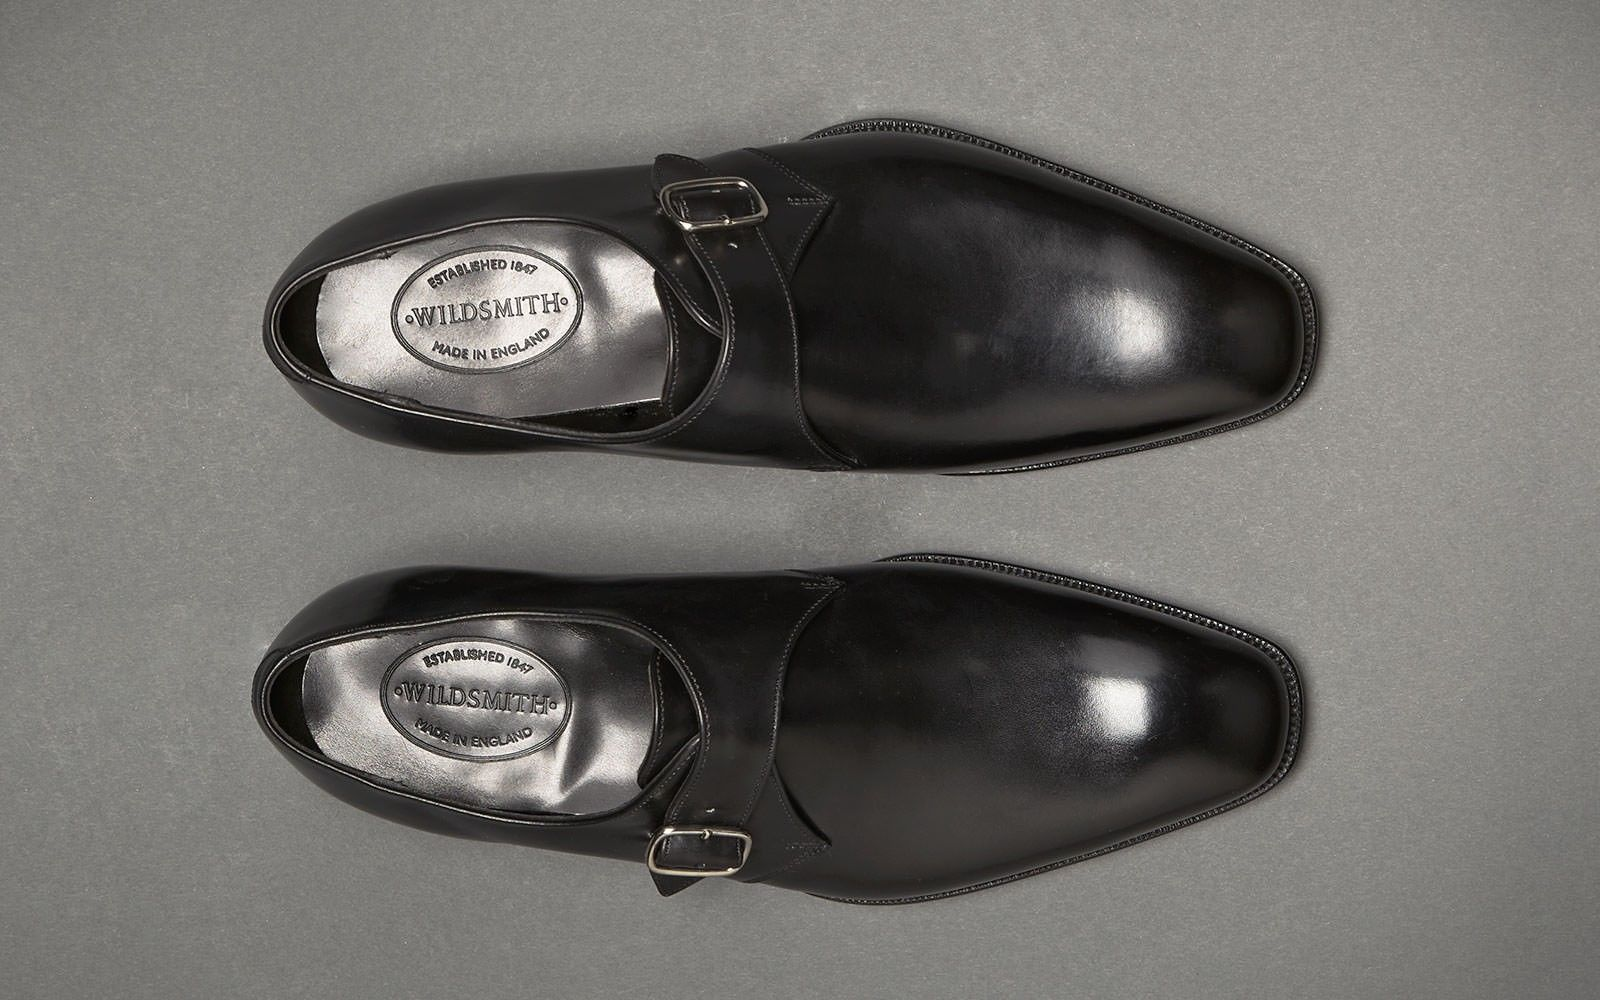 Wildsmith: St James Monk Mens Black Leather Single Strap Monk Shoe, Wildsmith Shoes